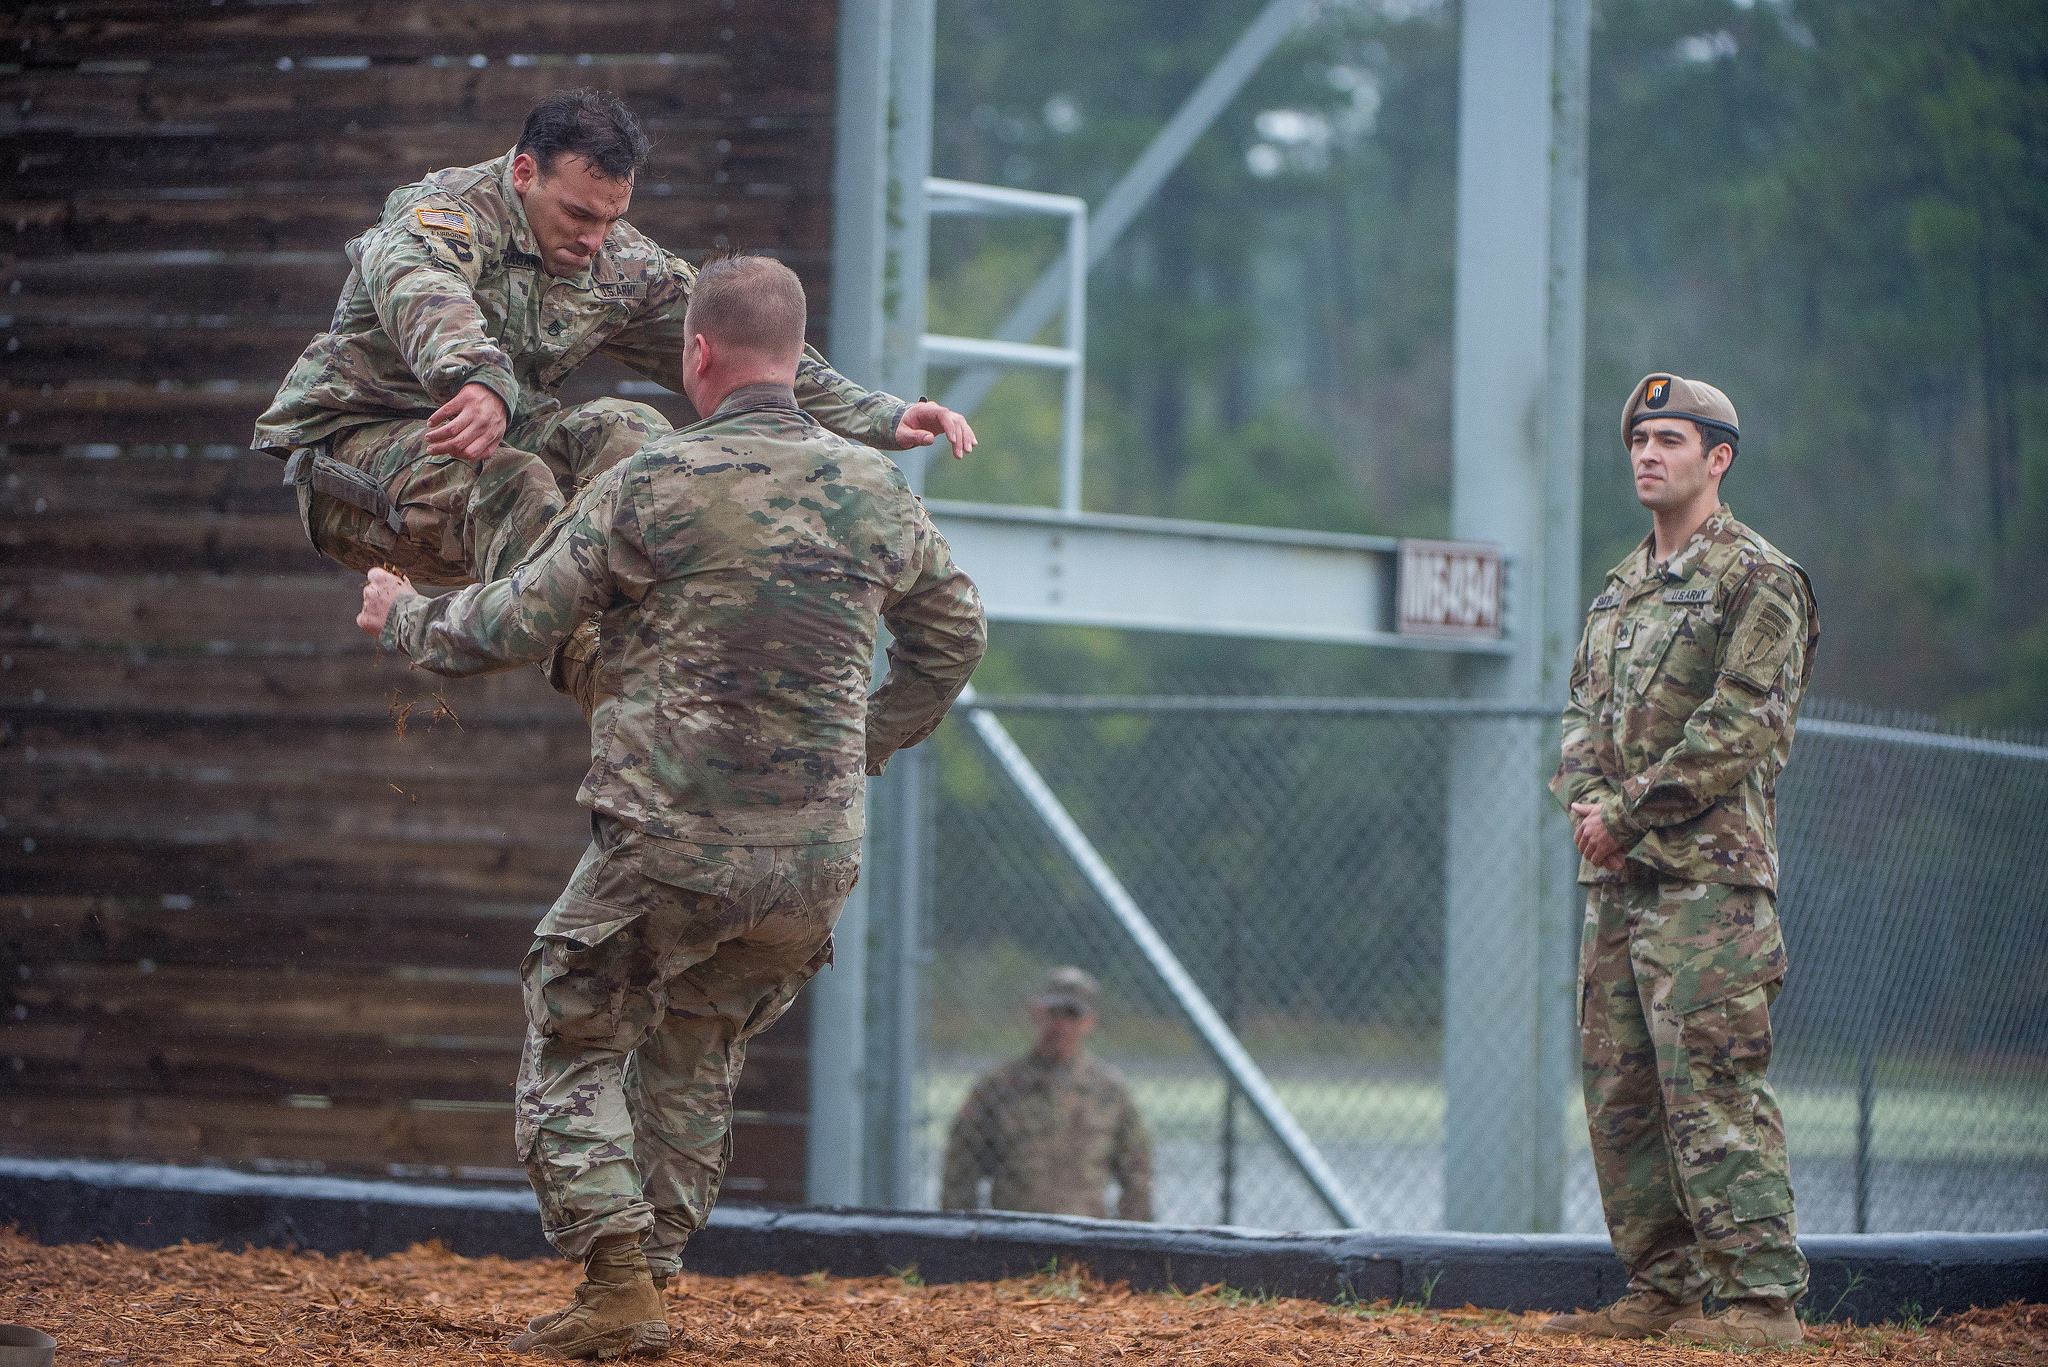 Soldiers conduct a combatives demonstration at the Airborne and Ranger Training Brigade ranger graduation at Fort Benning, Ga., Oct. 26, 2018. (Patrick A. Albright/Army)